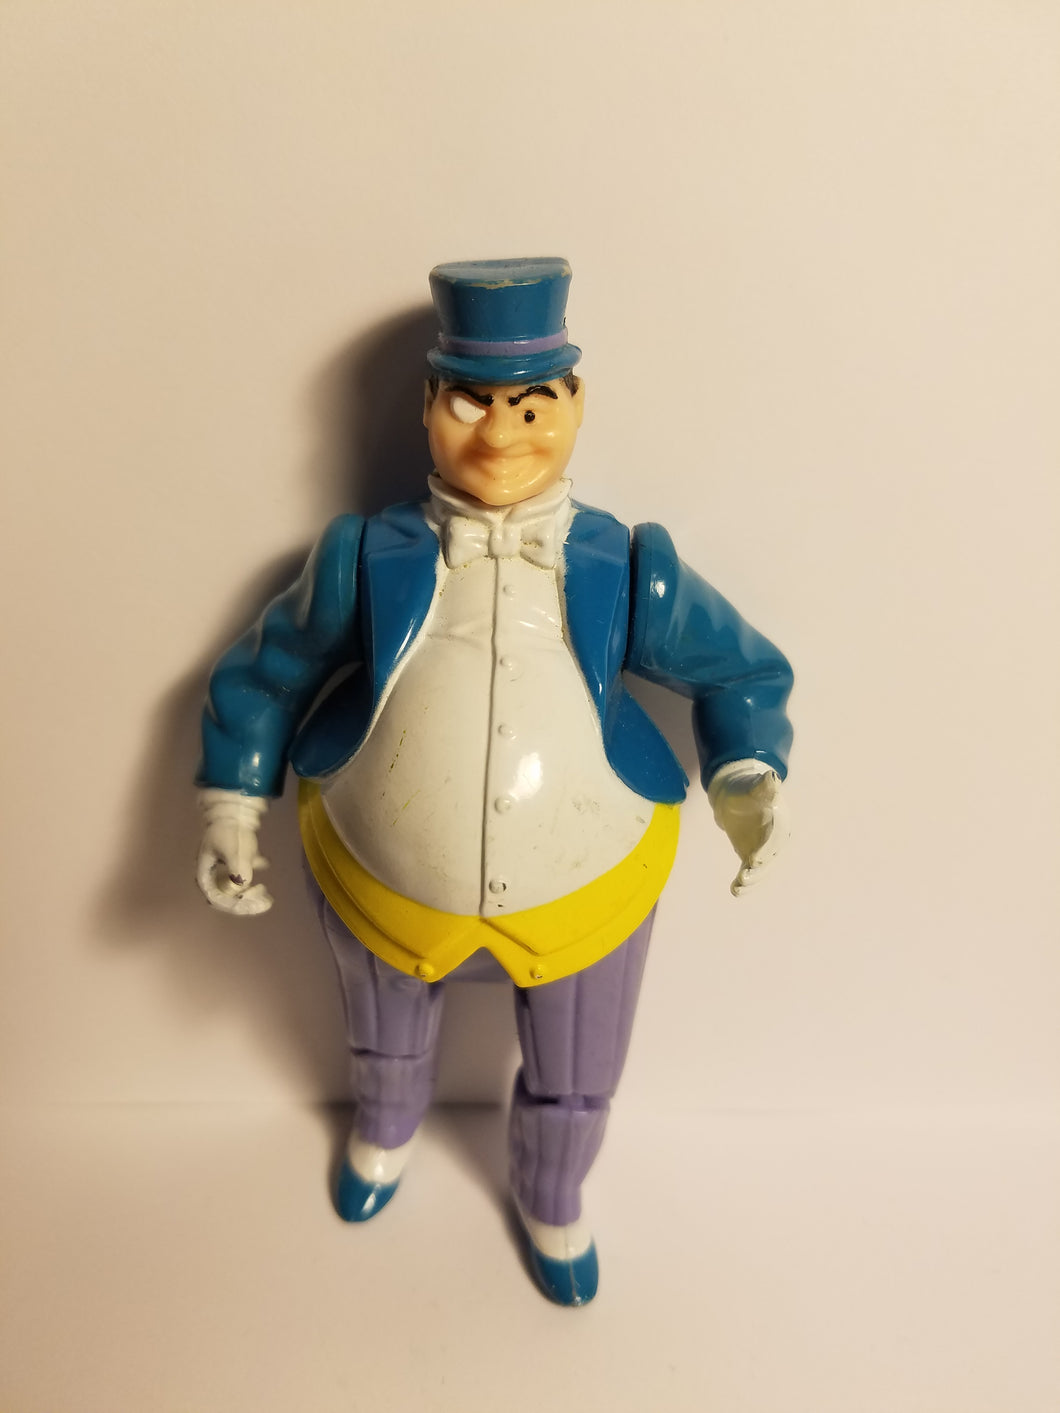 1989 Loose The Penguin Action Figure